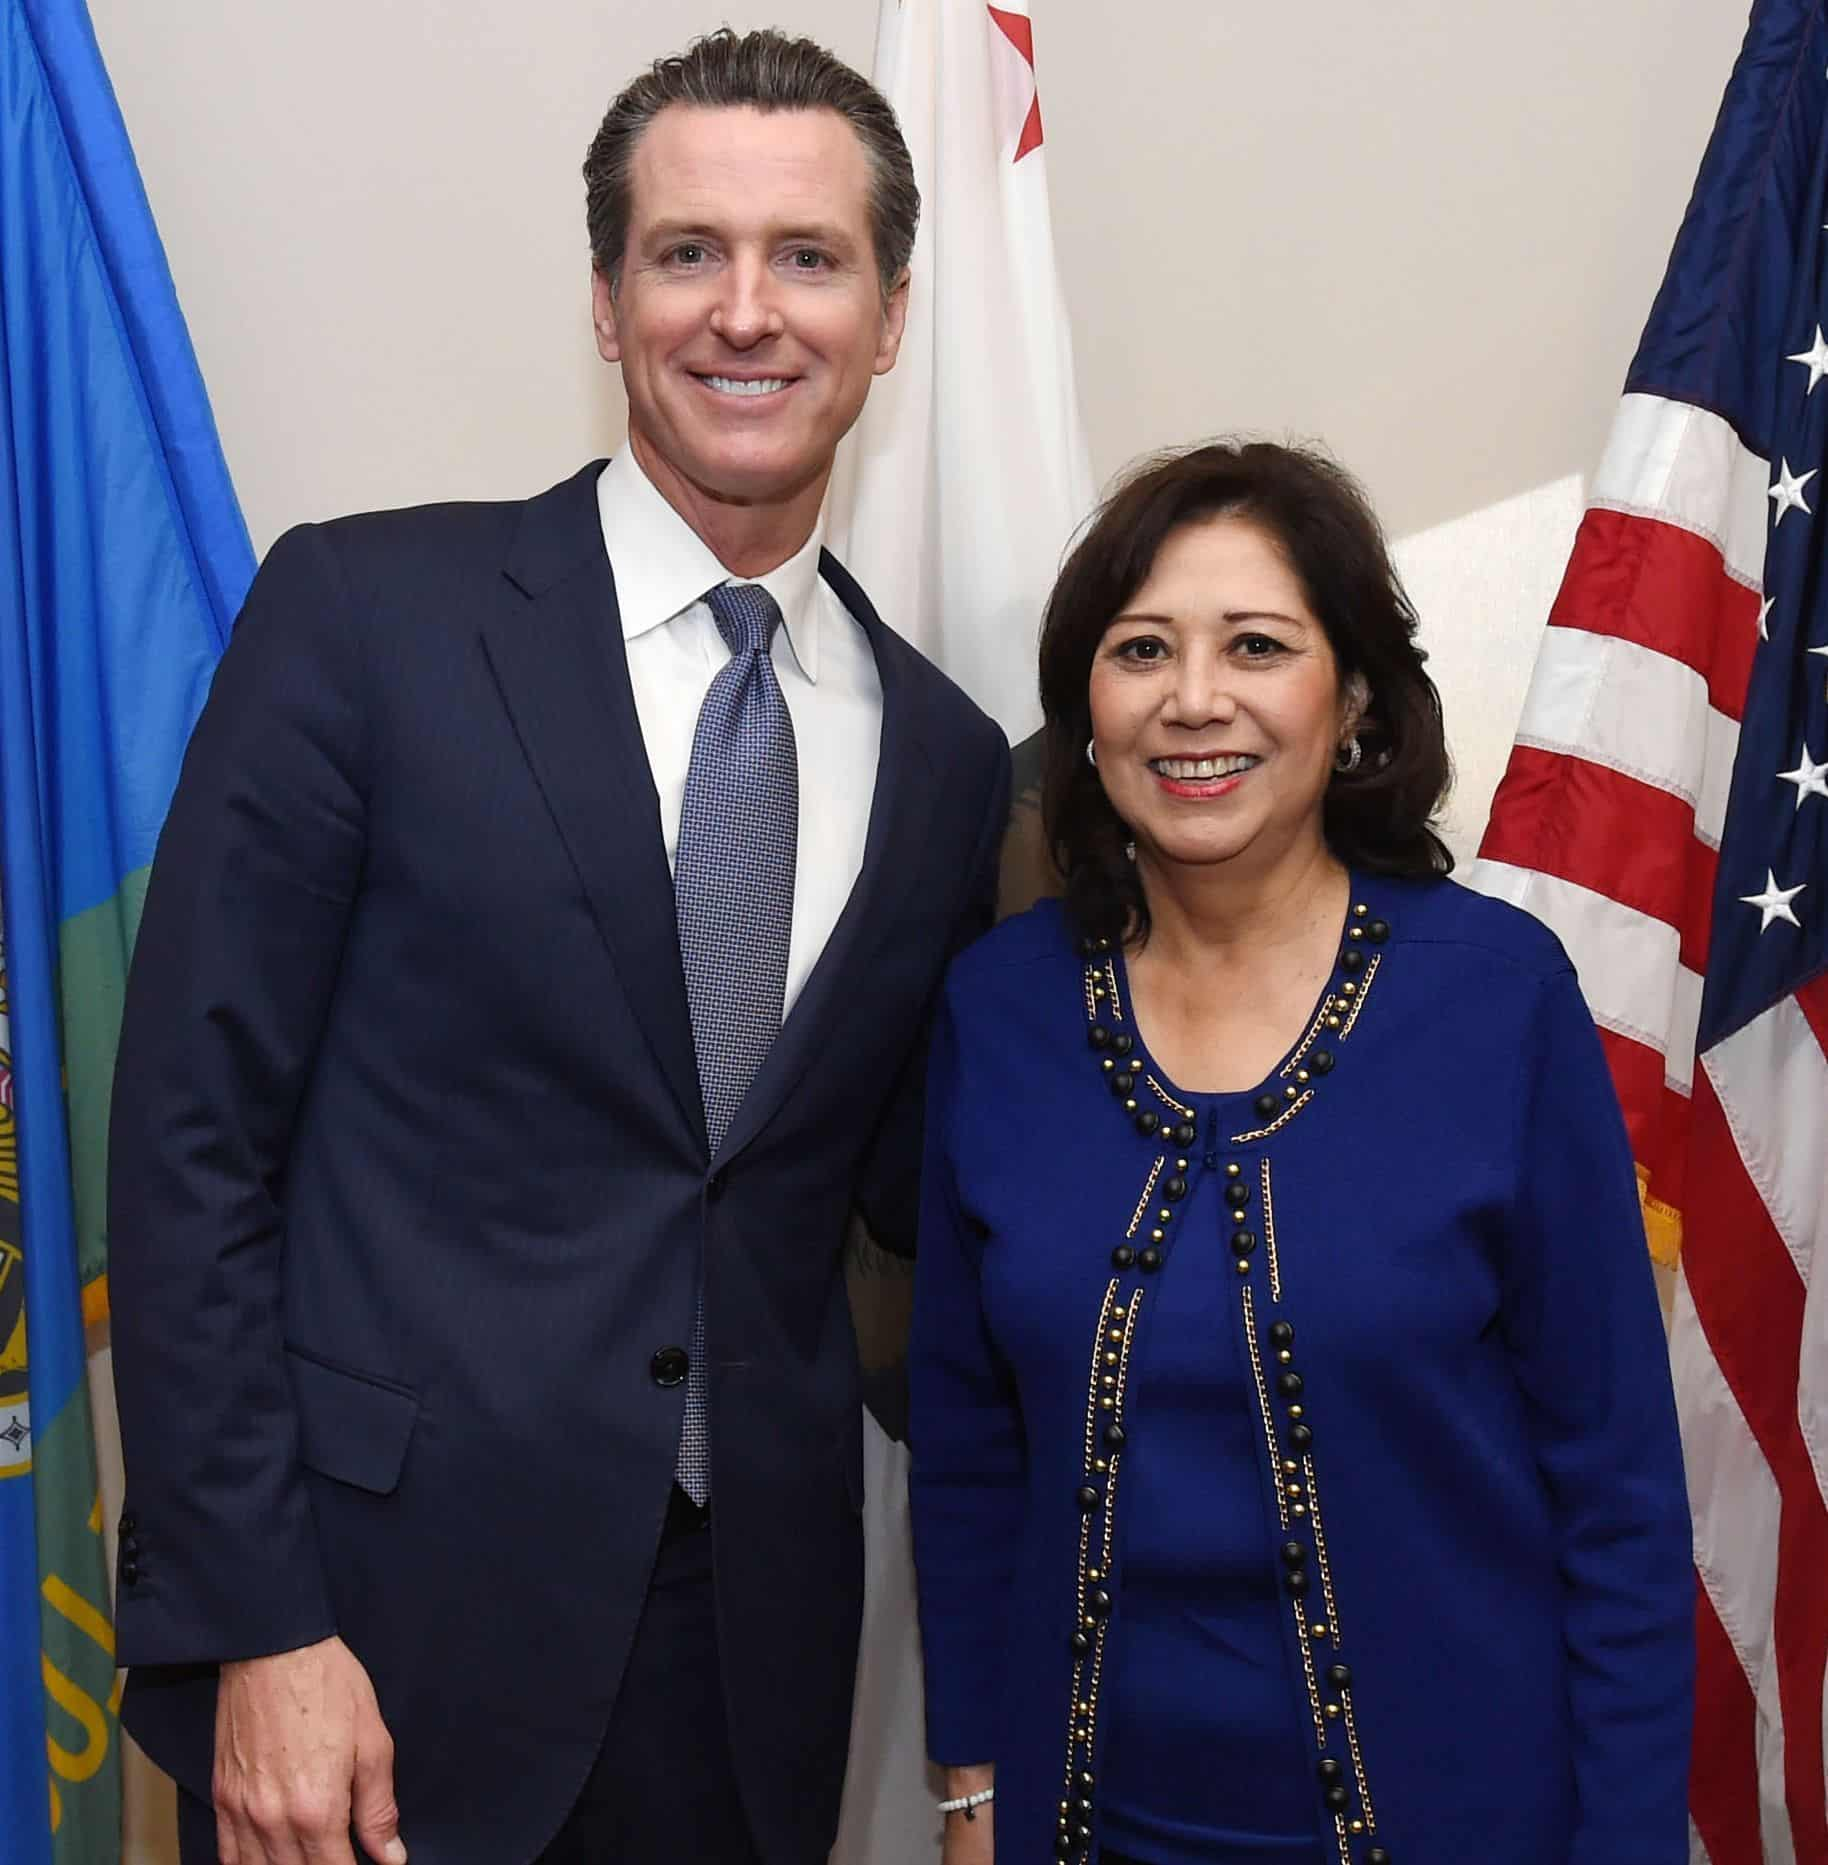 Statement from Supervisor Hilda L. Solis on Governor Newsom's Revised Proposed 2020-21 Budget